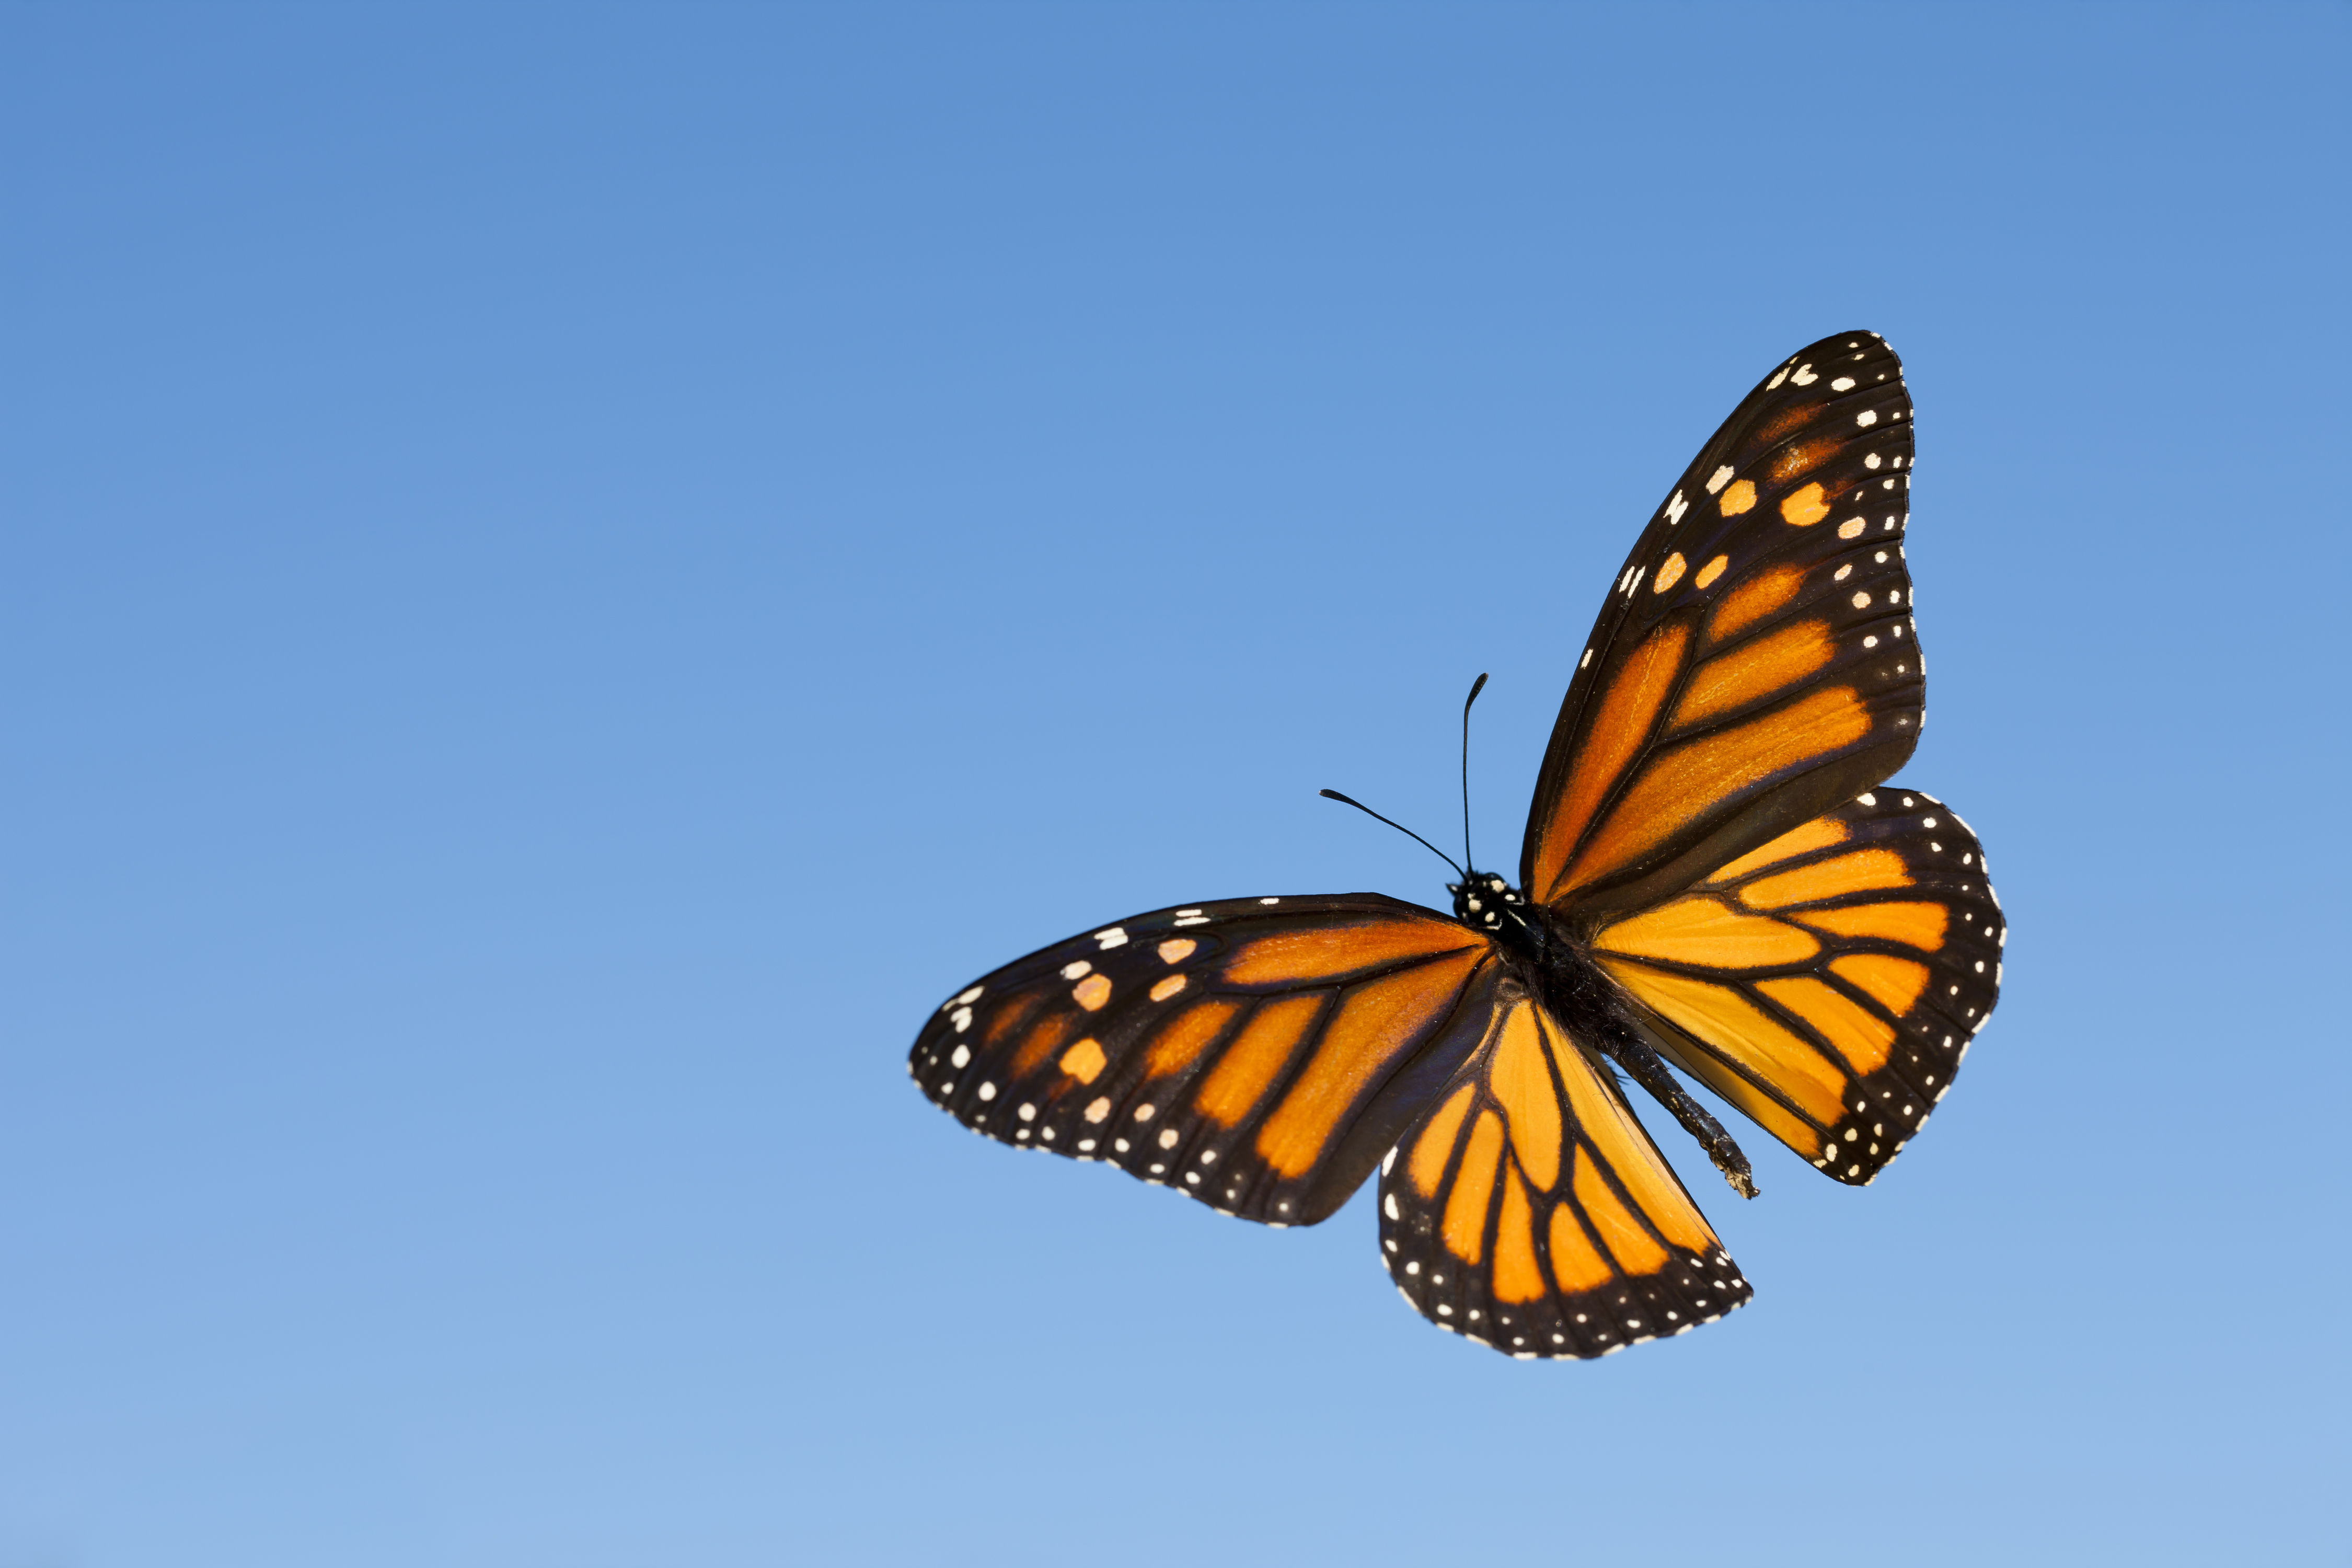 Experts Predict 300 Million Monarch Butterflies Will Journey Through Texas This Season